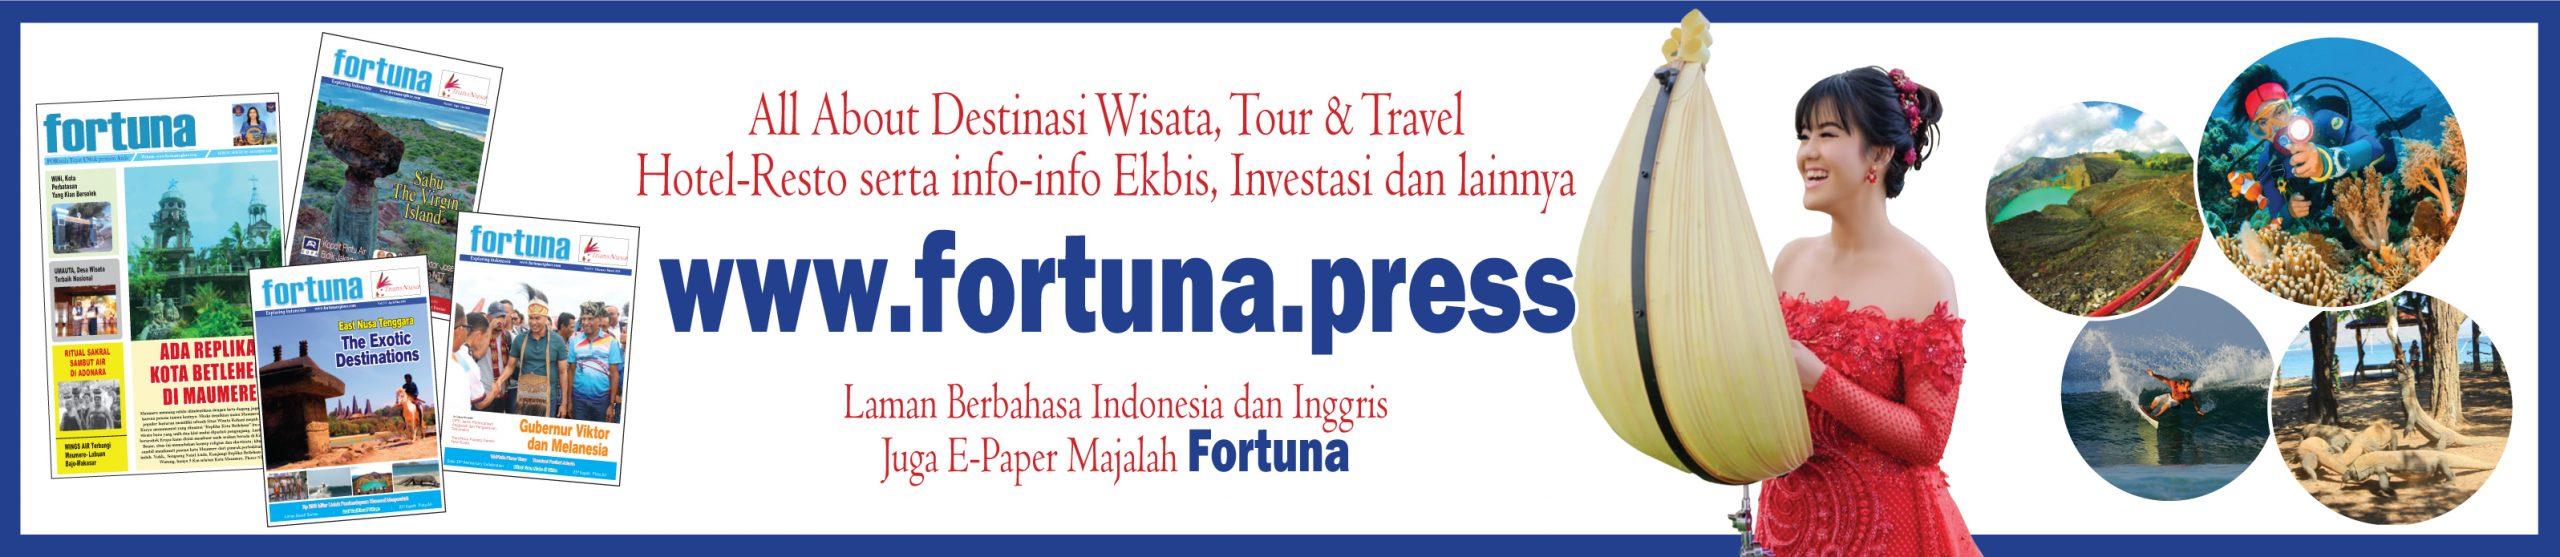 Fortuna English Version